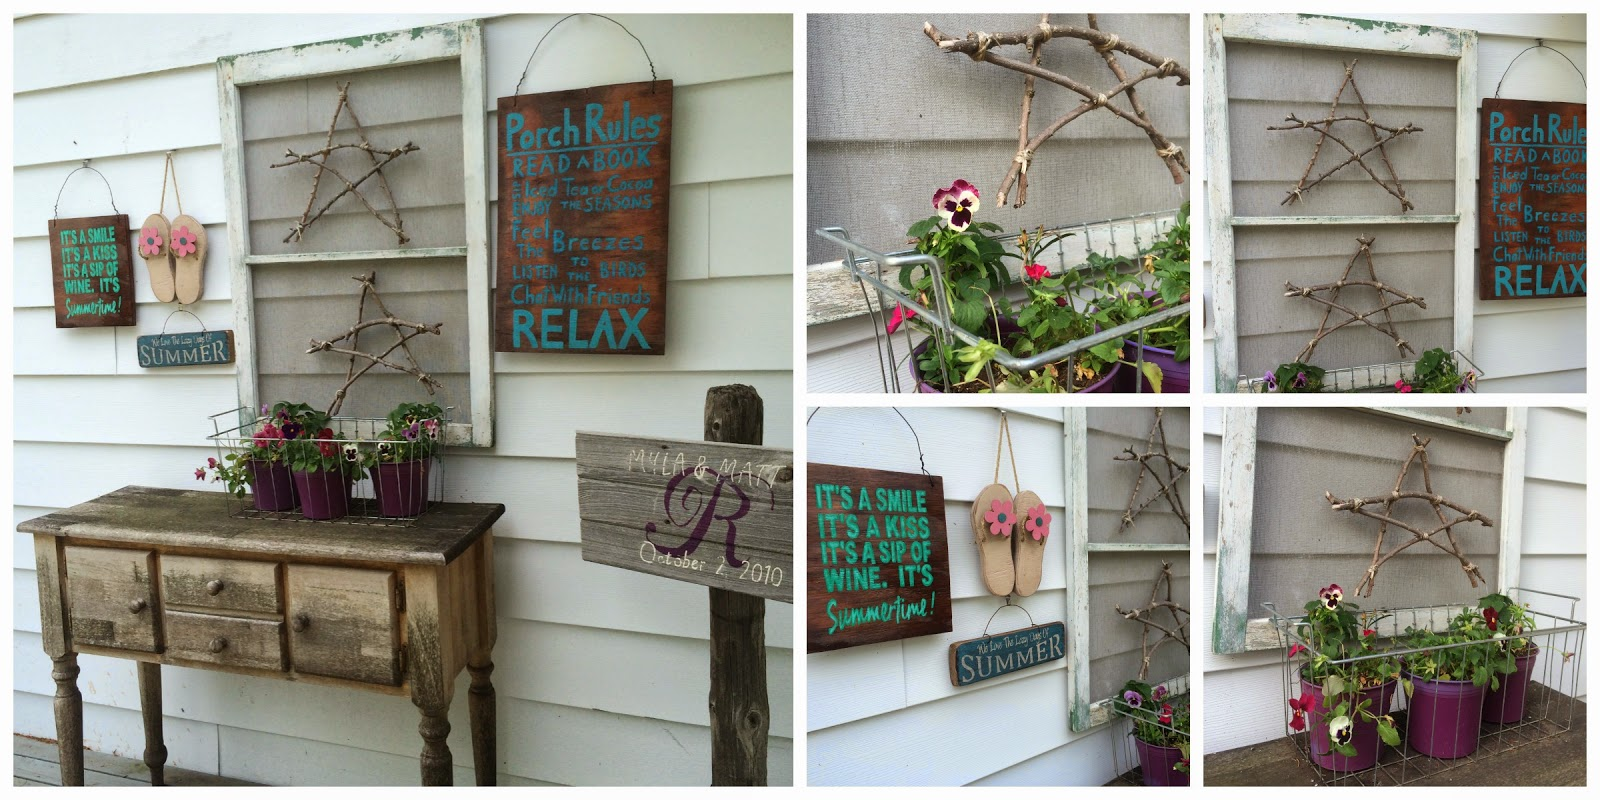 Hand Painted Wood Signs and Potted Plants